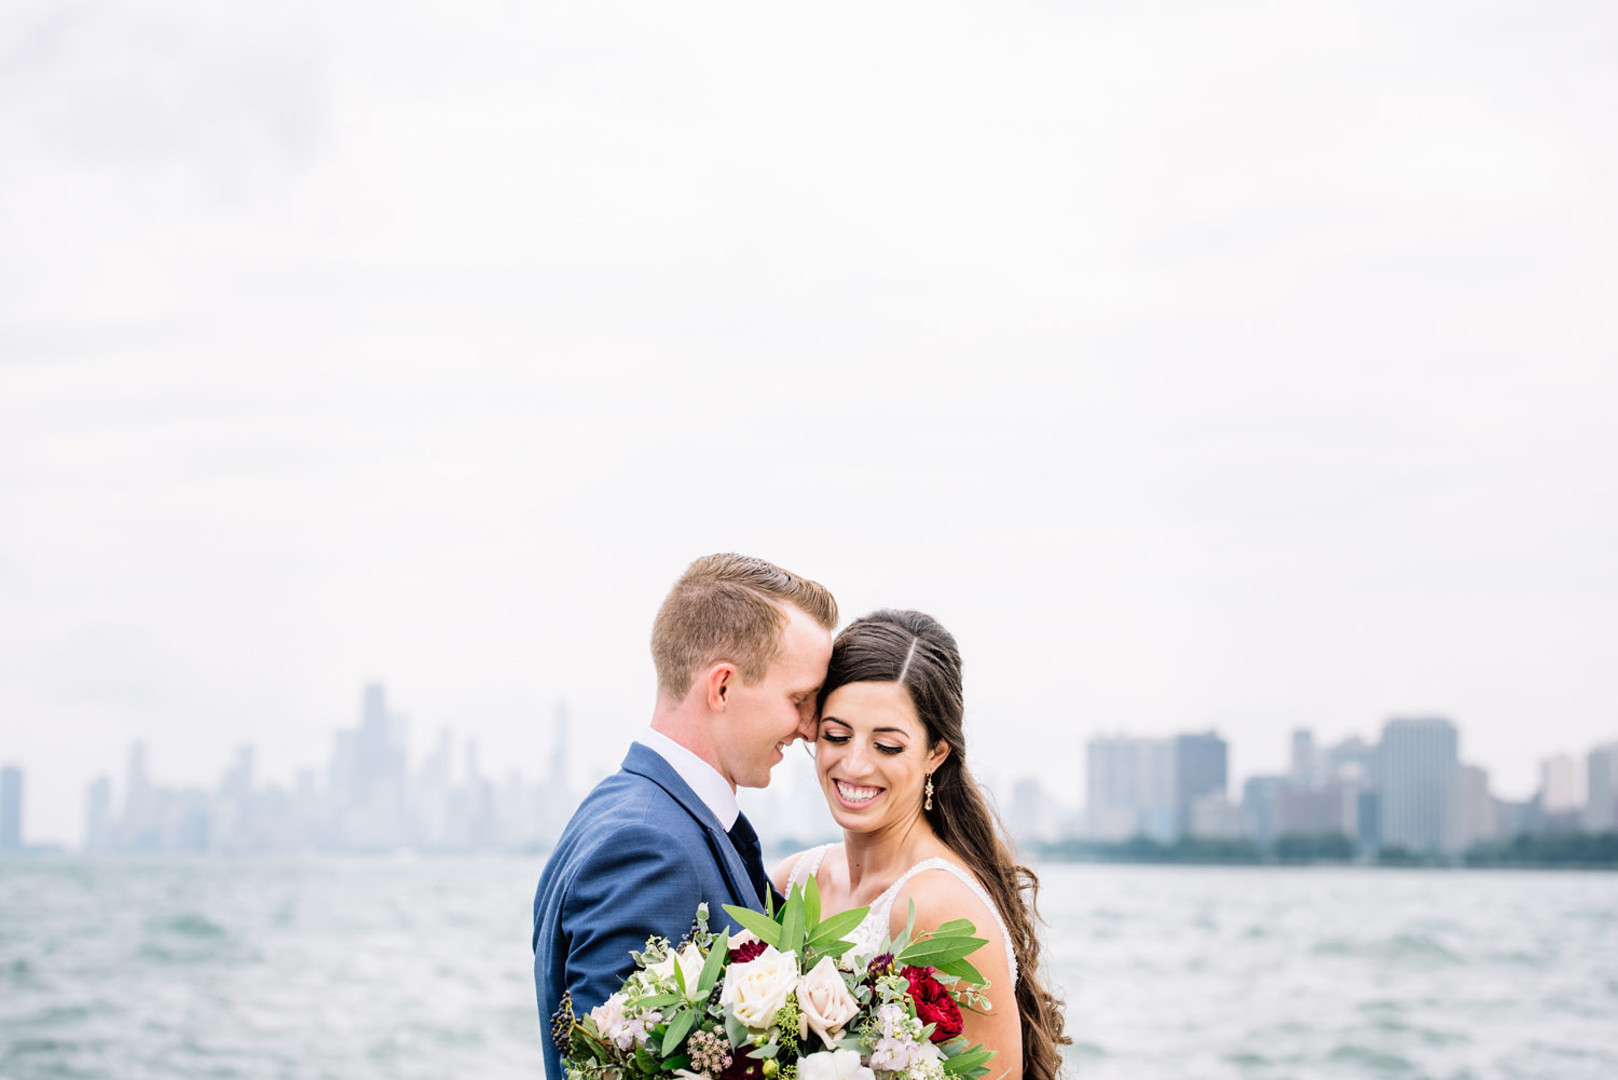 Modern industrial Chicago wedding planned by Alexa Kay Events and captured by Raegan Lintner Photography. See more modern wedding inspiration at CHItheeWED.com!